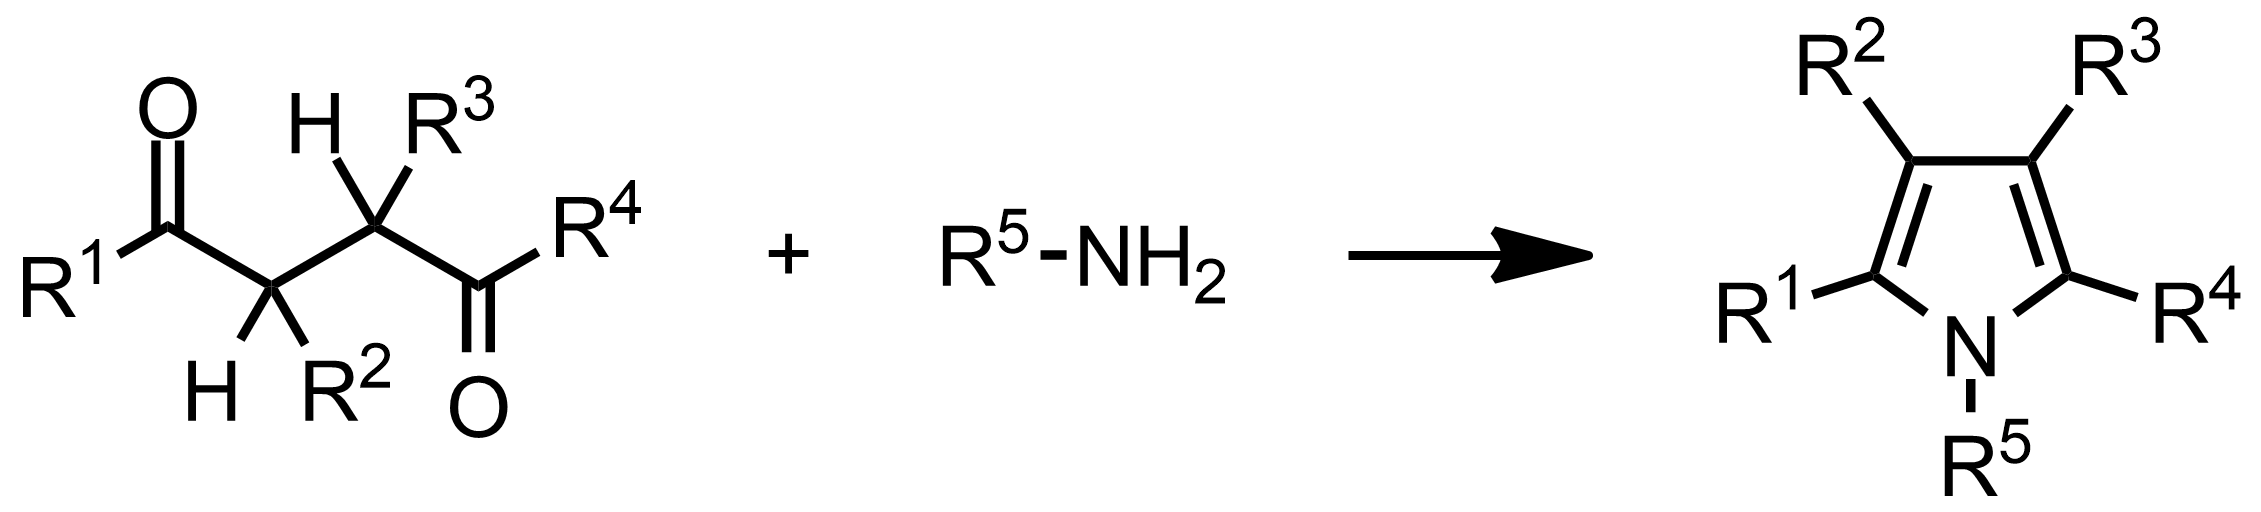 Schematic representation of the Paal-Knorr Pyrrole Synthesis.